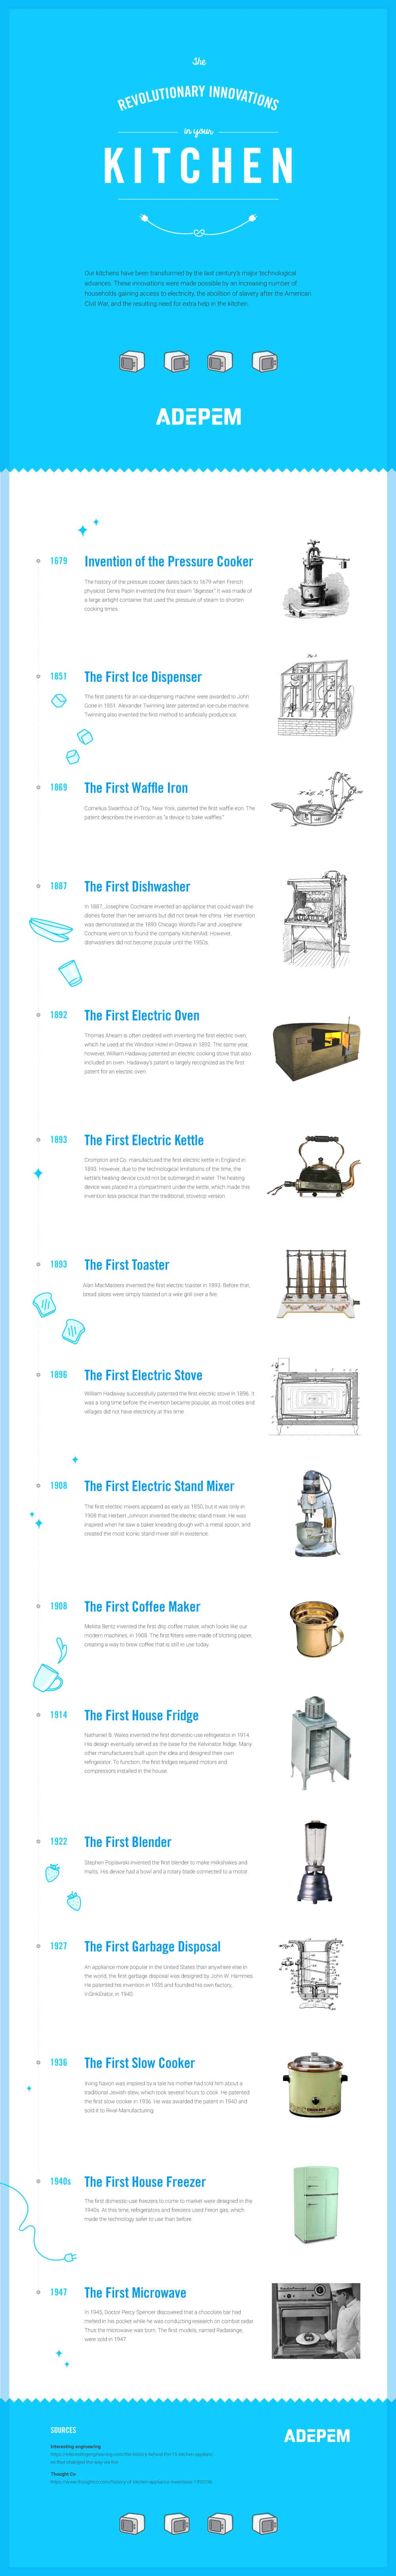 A Brief History of Our Kitchen Appliances Infographic